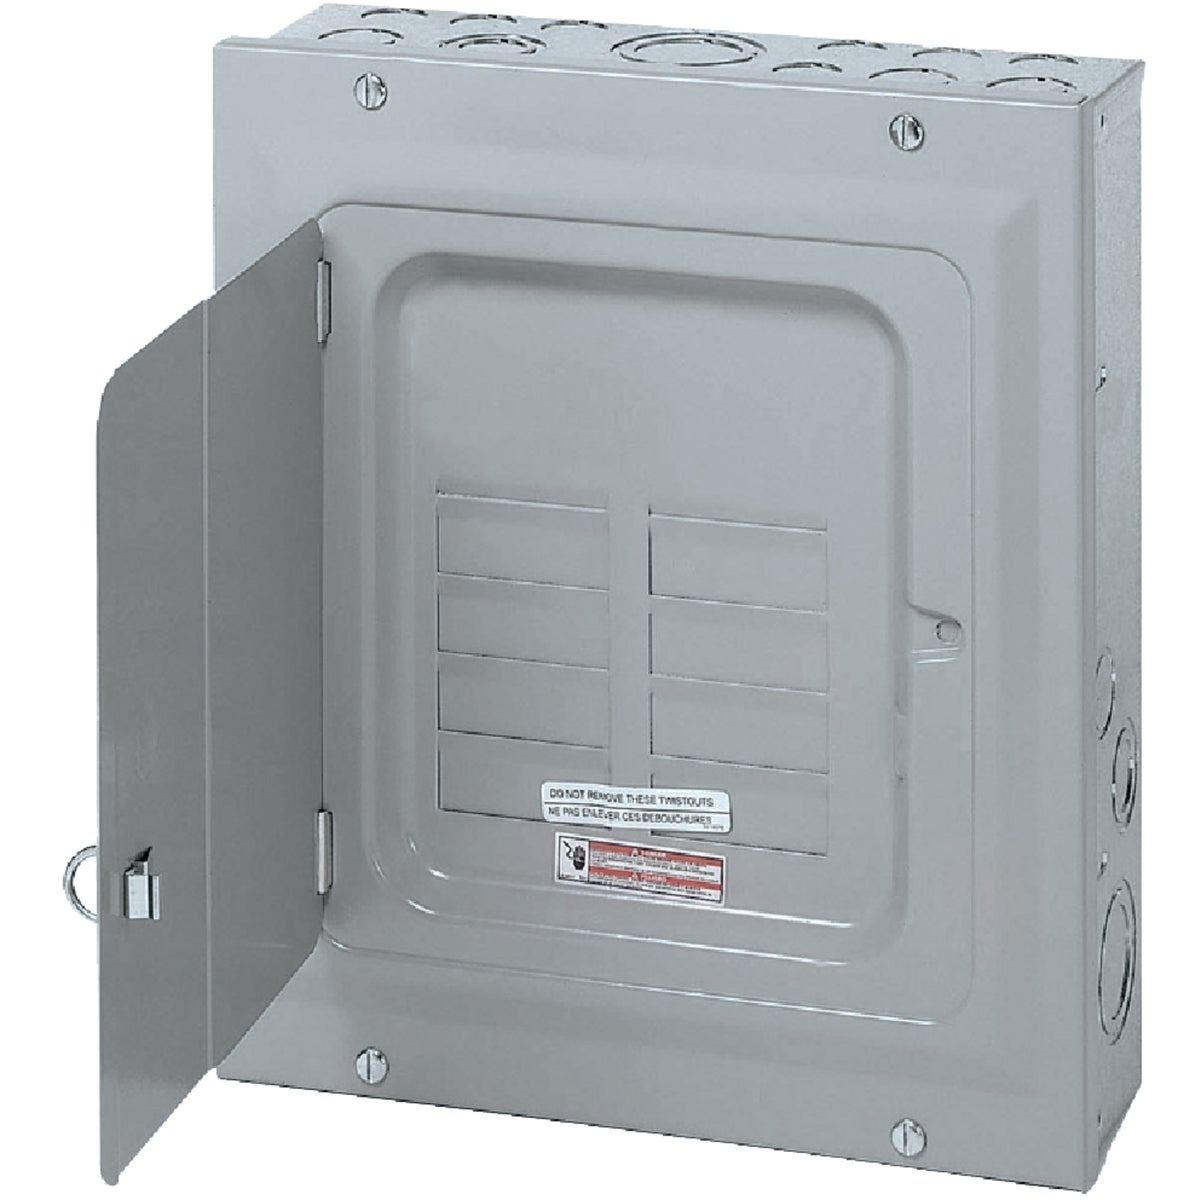 MAIN LUG LOAD CENTER - BR612L125SDP by Eaton Corporation